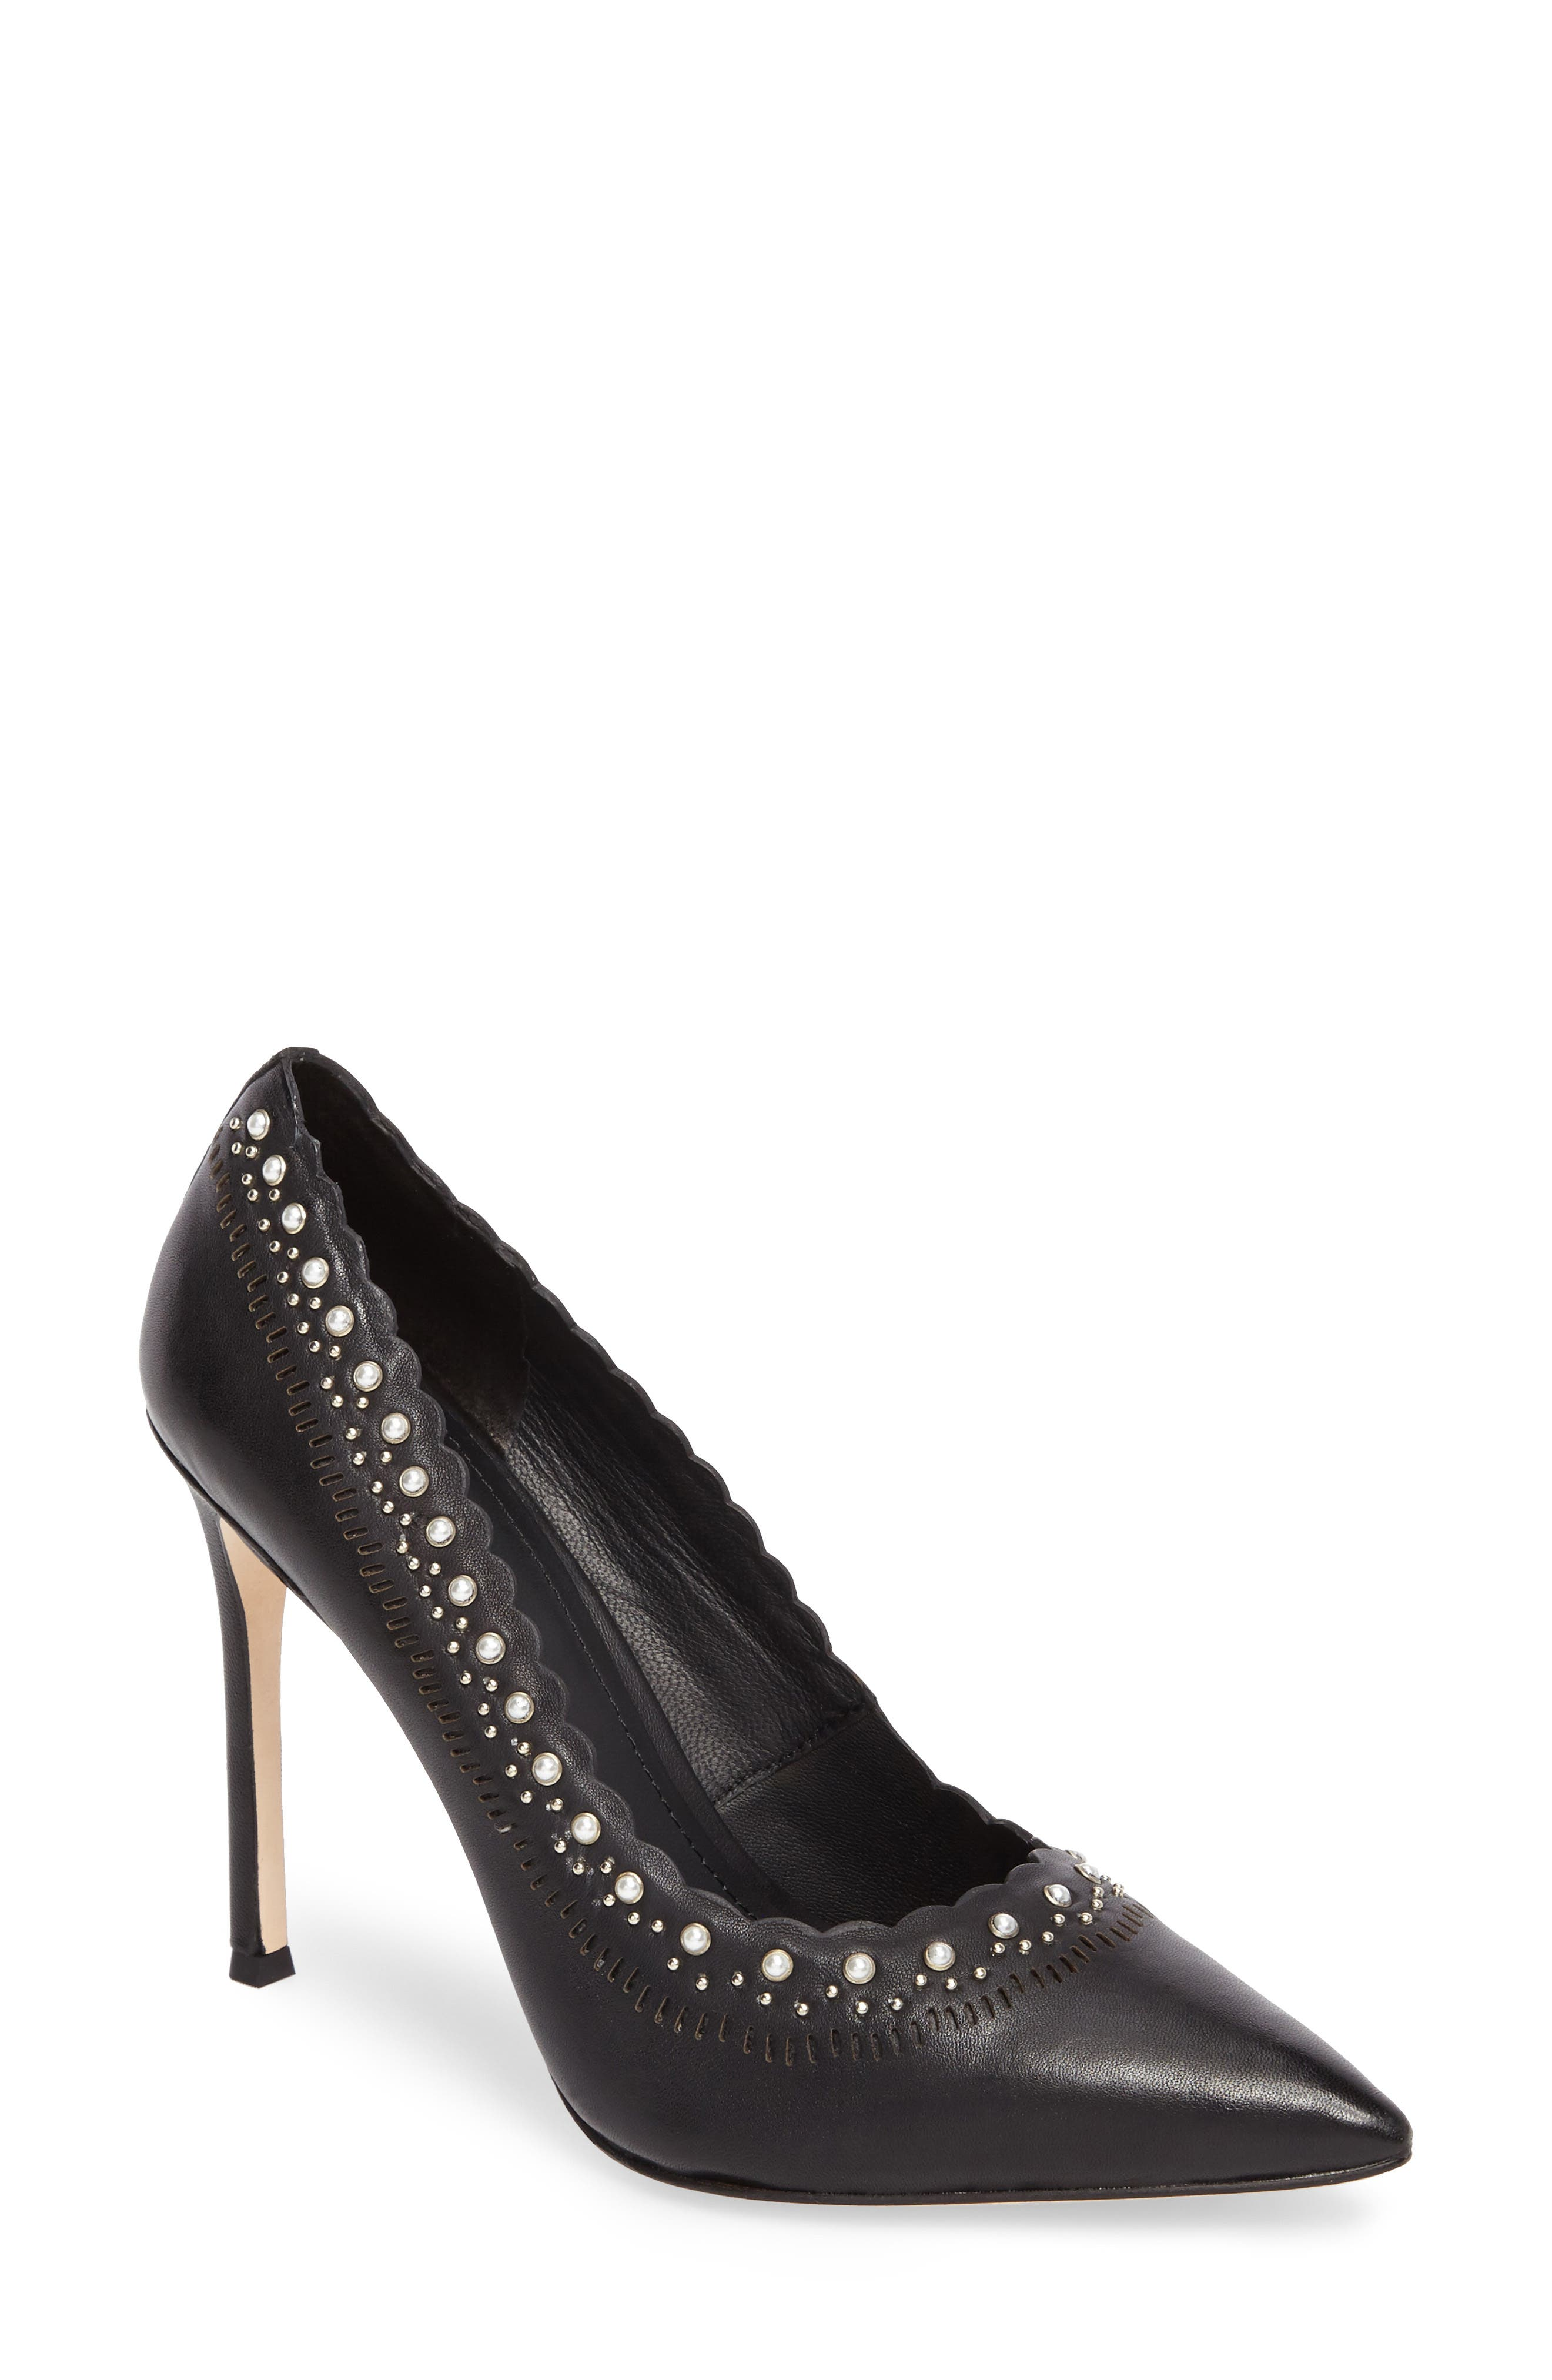 Cerella Embellished Pump,                         Main,                         color, Black Leather